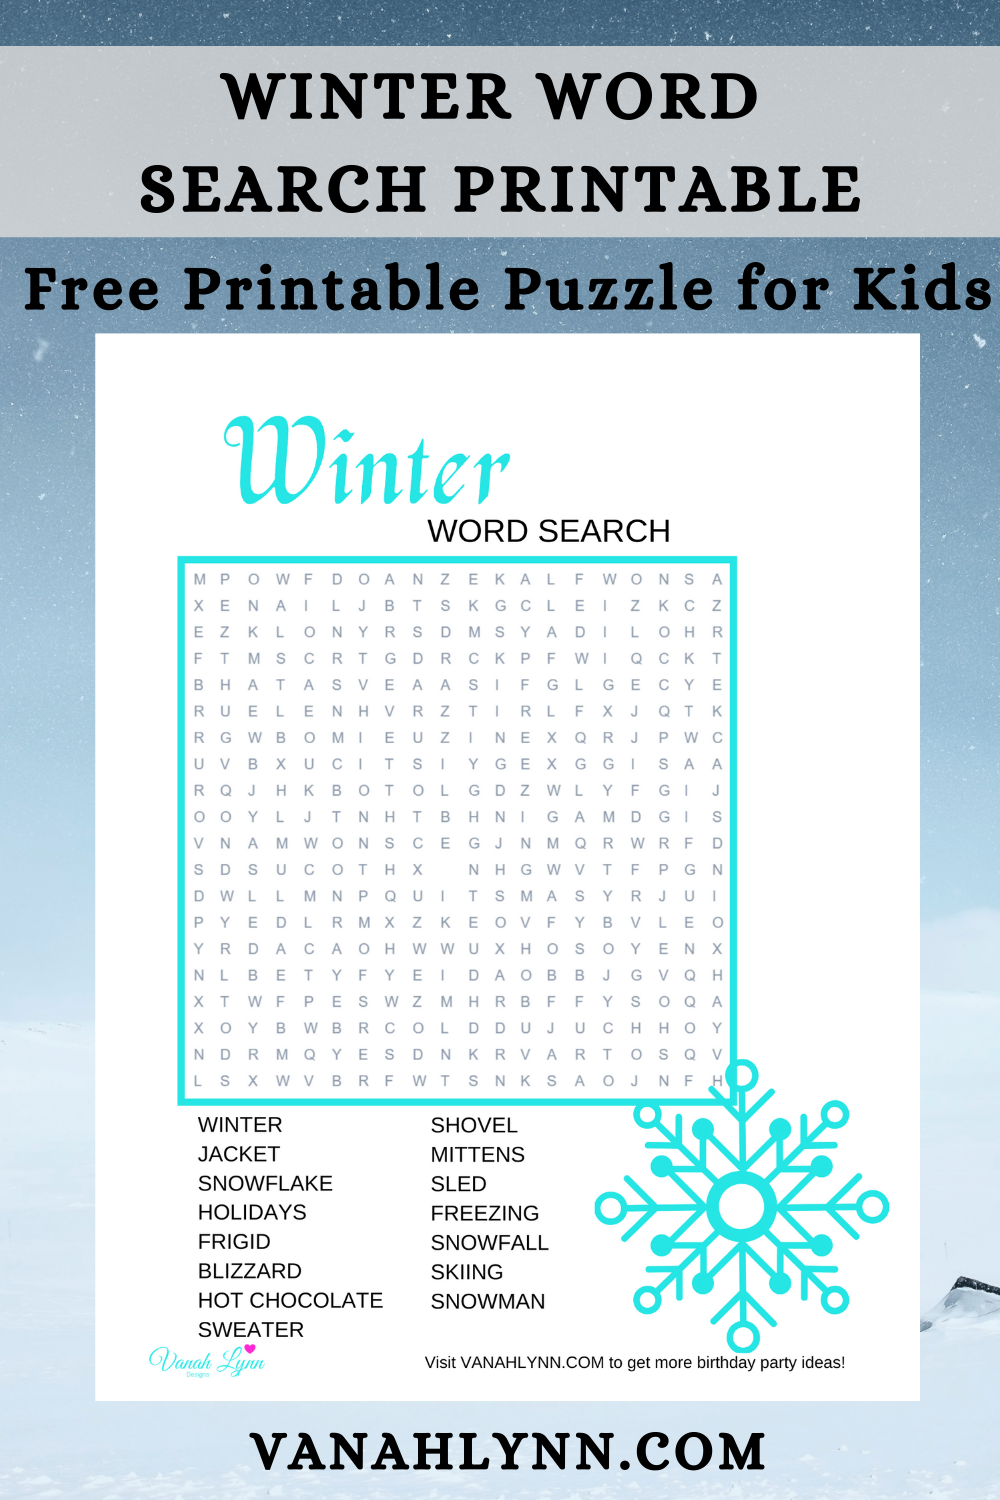 winter puzzle for a child's birthday party